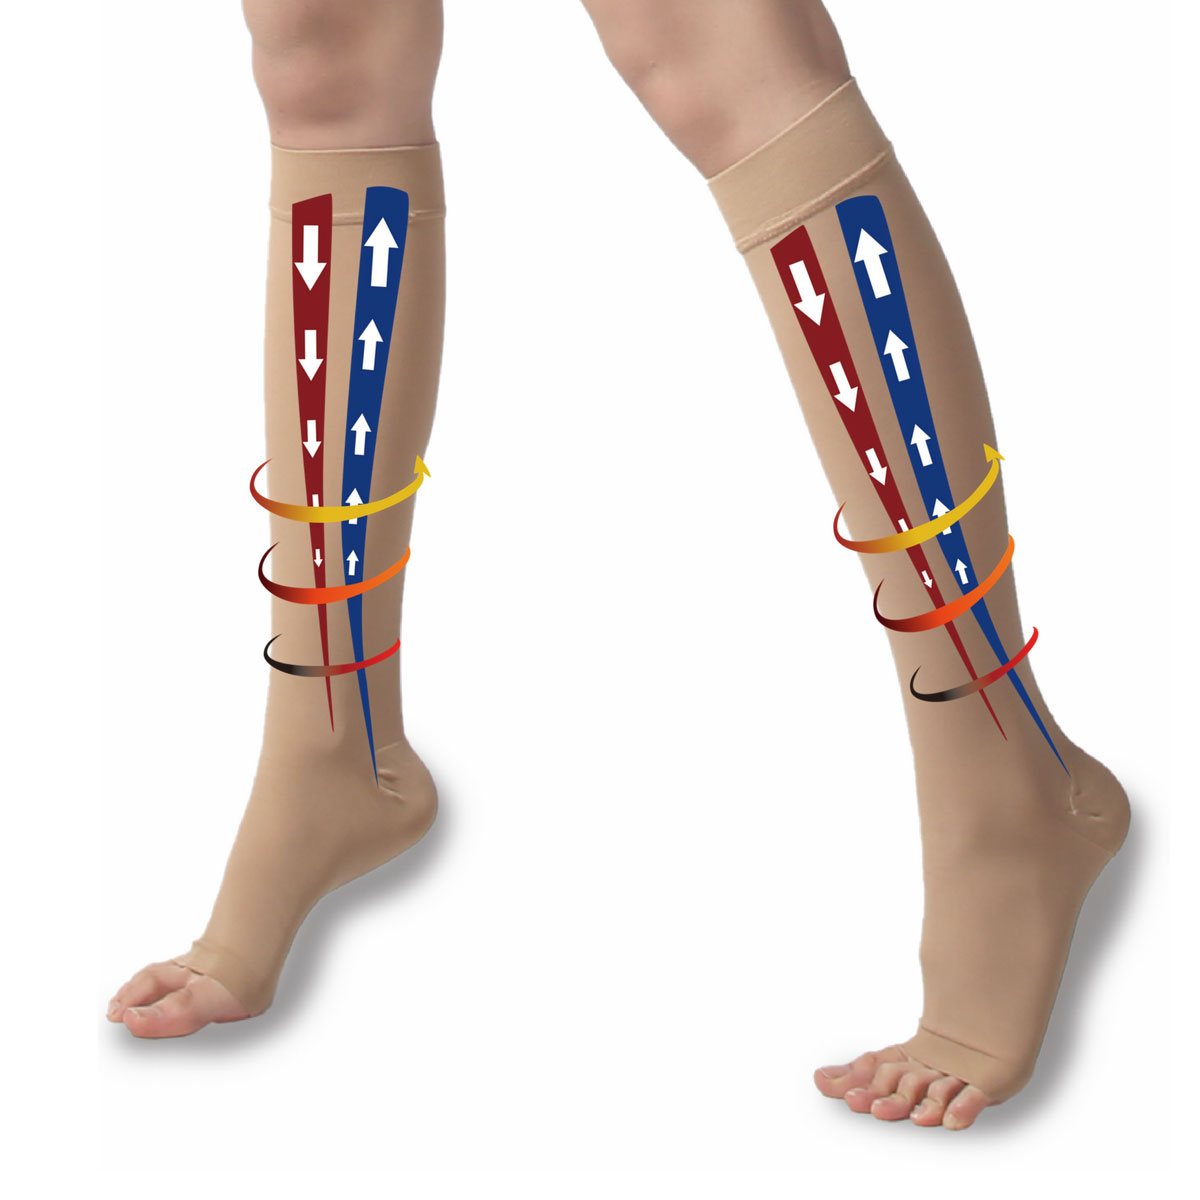 TXG Opaque thigh high compression stockings showing blood flow